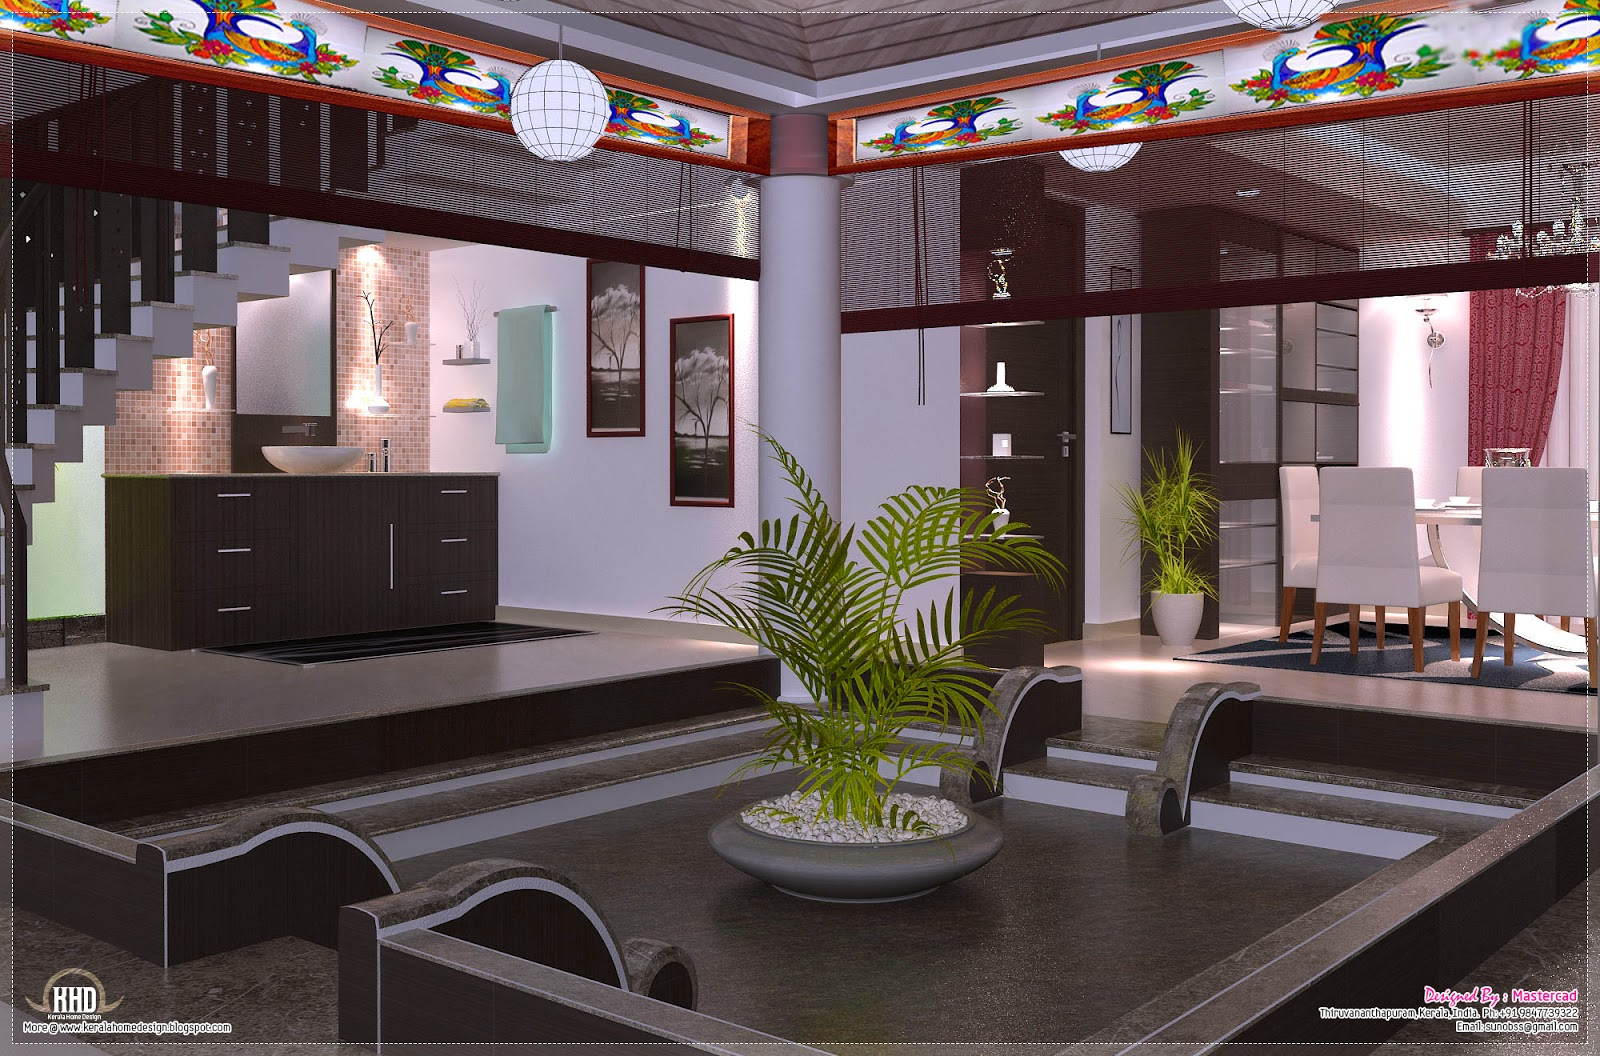 Interior design ideas kerala home design and floor plans for Kerala model interior designs